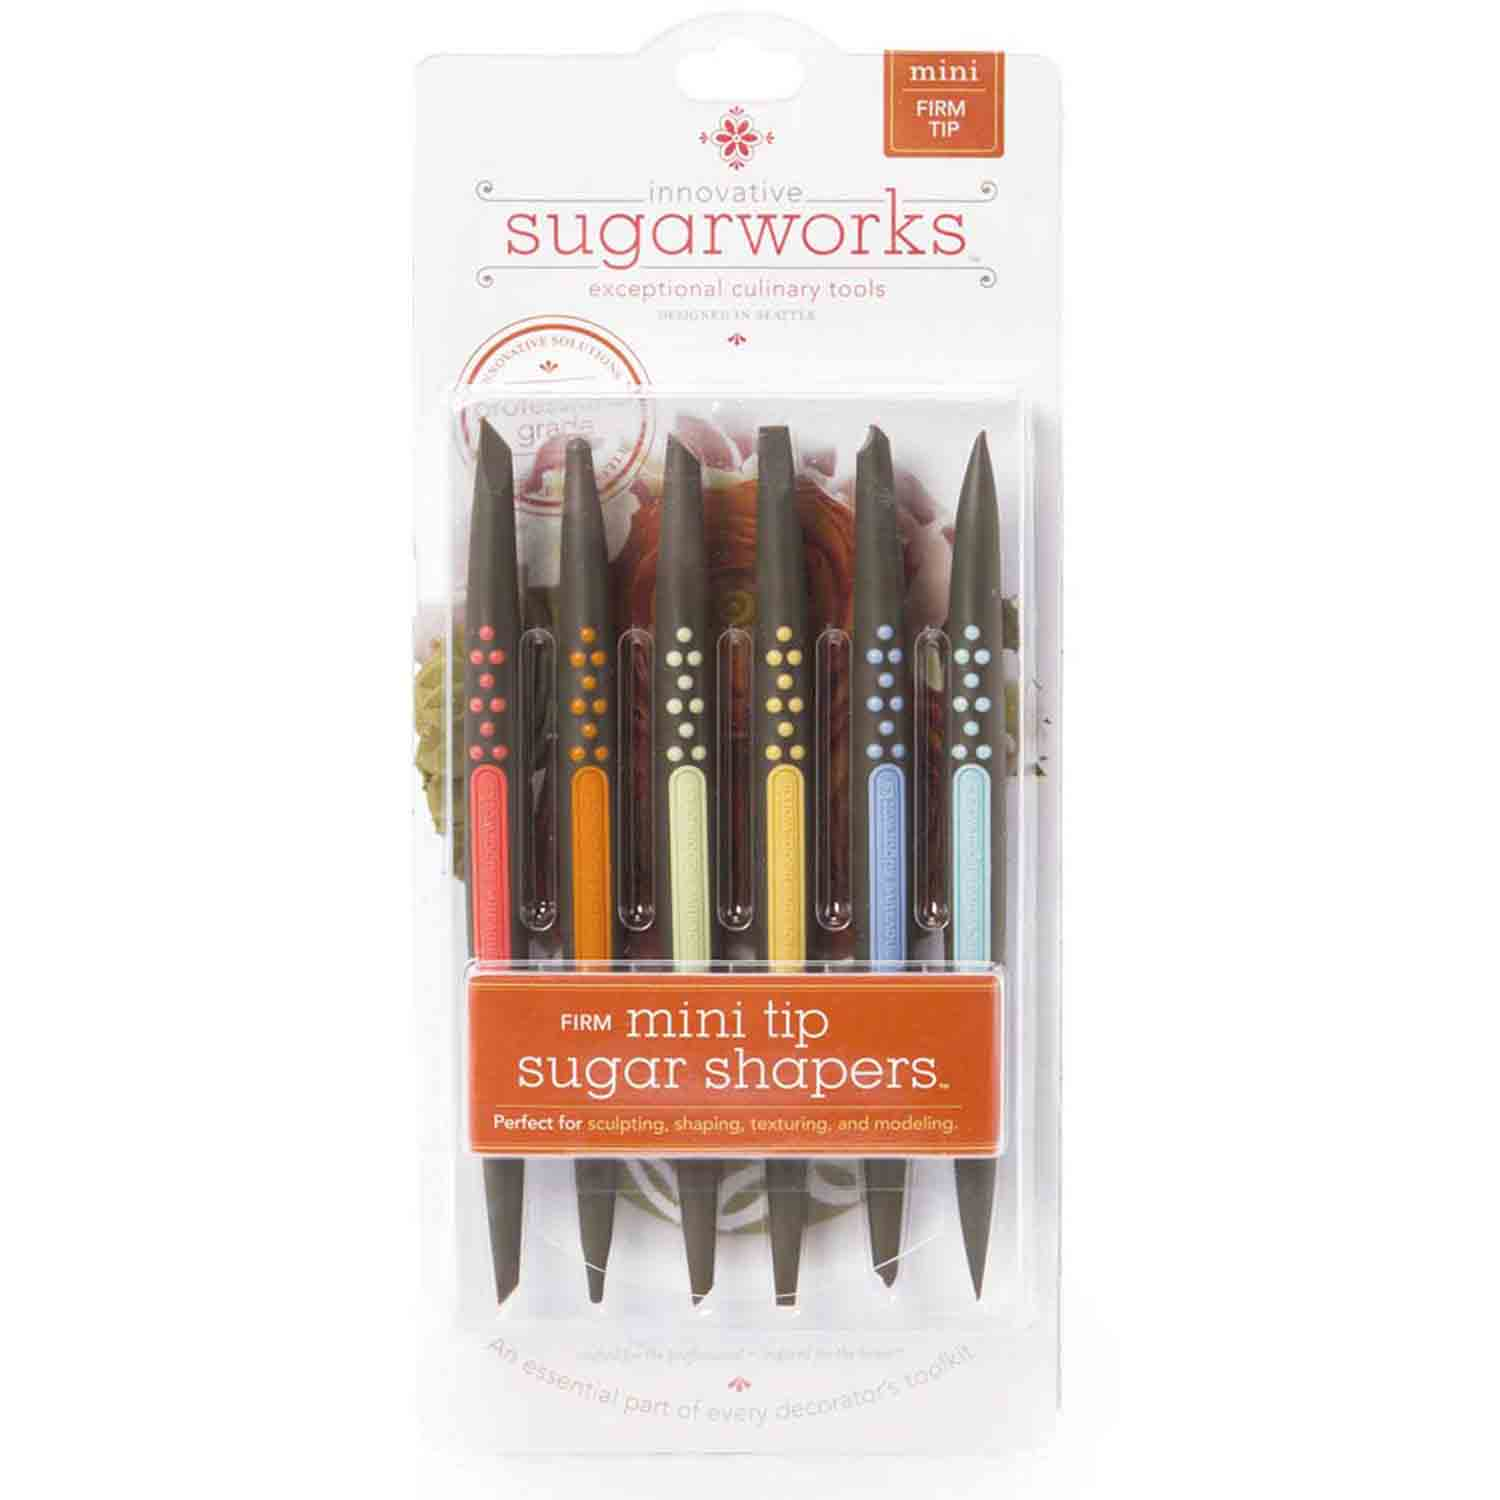 Sugar Shaper Mini Firm Tip Modeling Tools